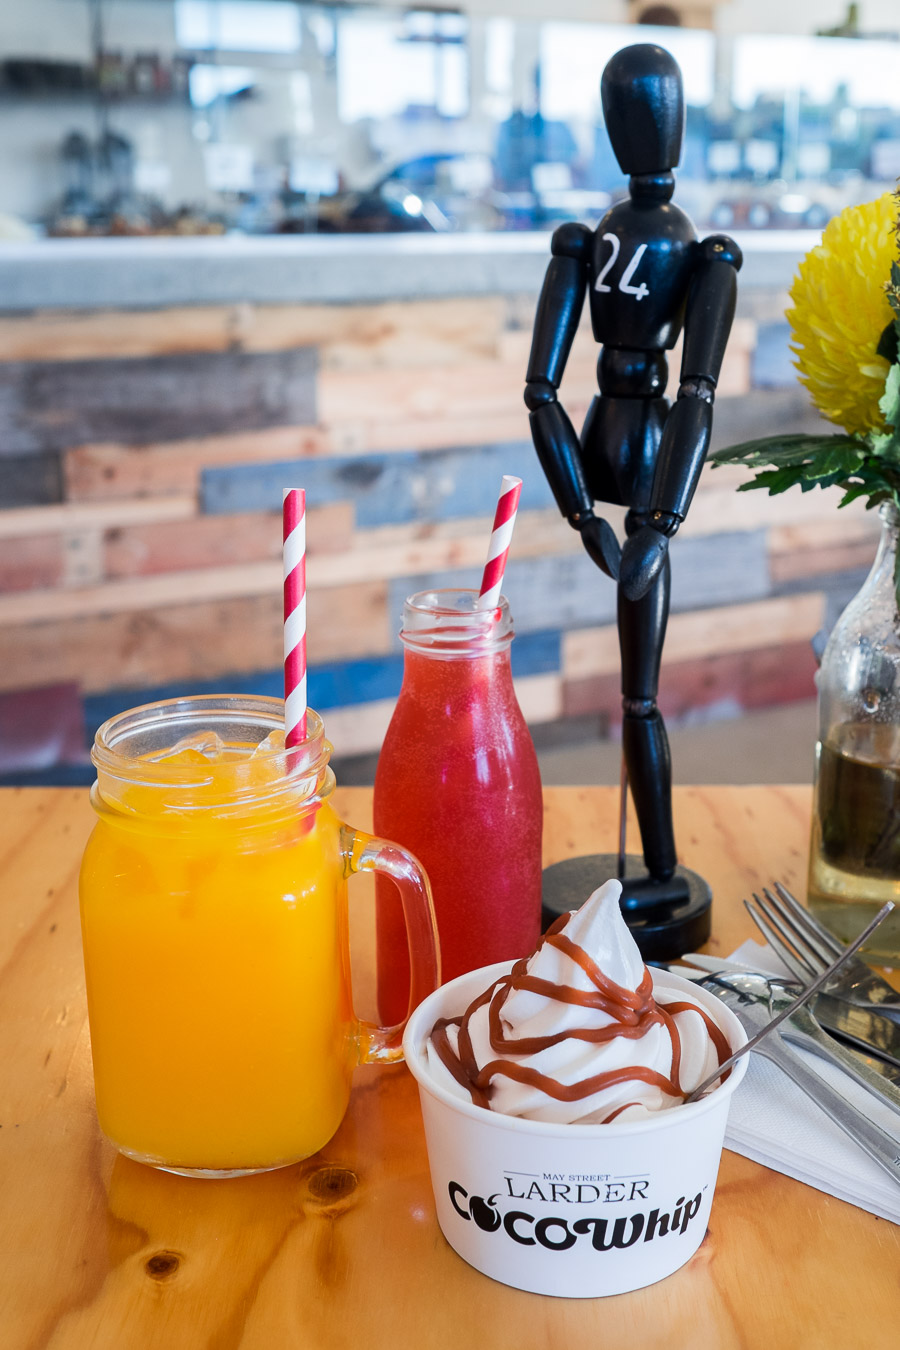 Raspberry, vanilla and lime housemade soda (AU$4), fresh organic orange juice (AU$7.50) and CocoWhip Original (AU$7) with salted caramel topping (AU$1). Stripey paper straws have twee appeal but are as impractical as they are photogenic - this one didn't last the entire jar of orange juice: liquid plus paper equals pulp.